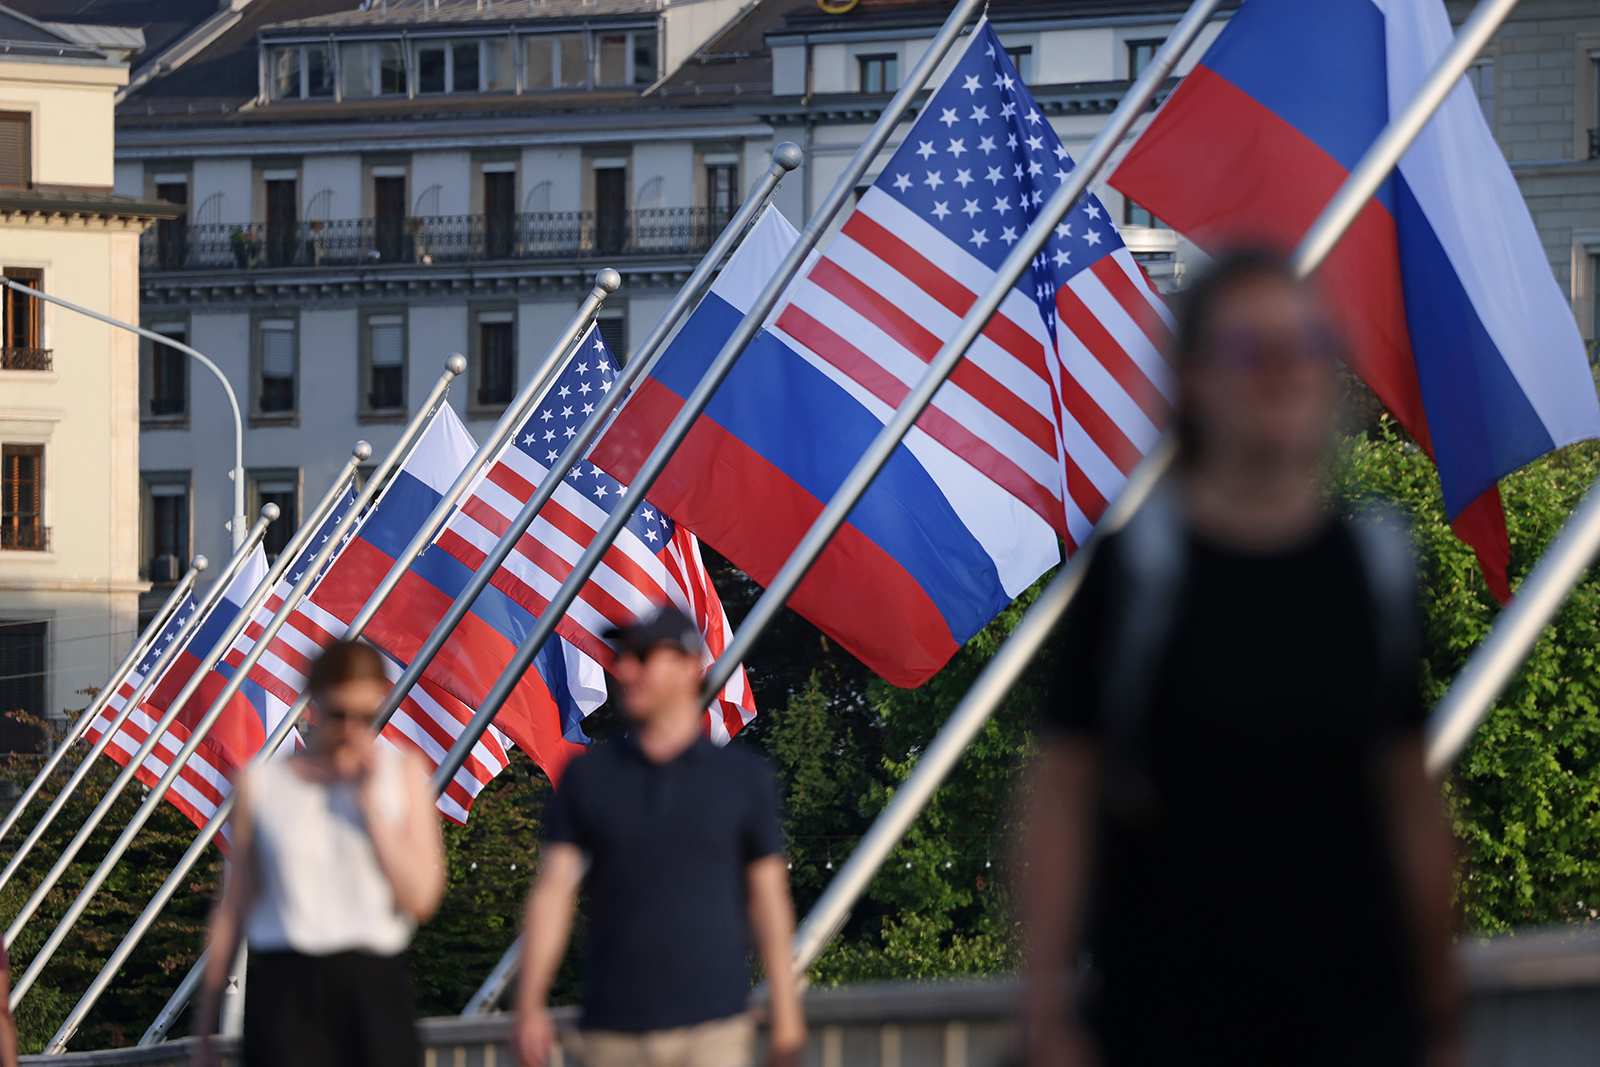 People walk under Russian and American flags on a bridge in the city center prior to a meeting between US President Joe Biden and Russian President Vladimir Putin on June 15, in Geneva, Switzerland.